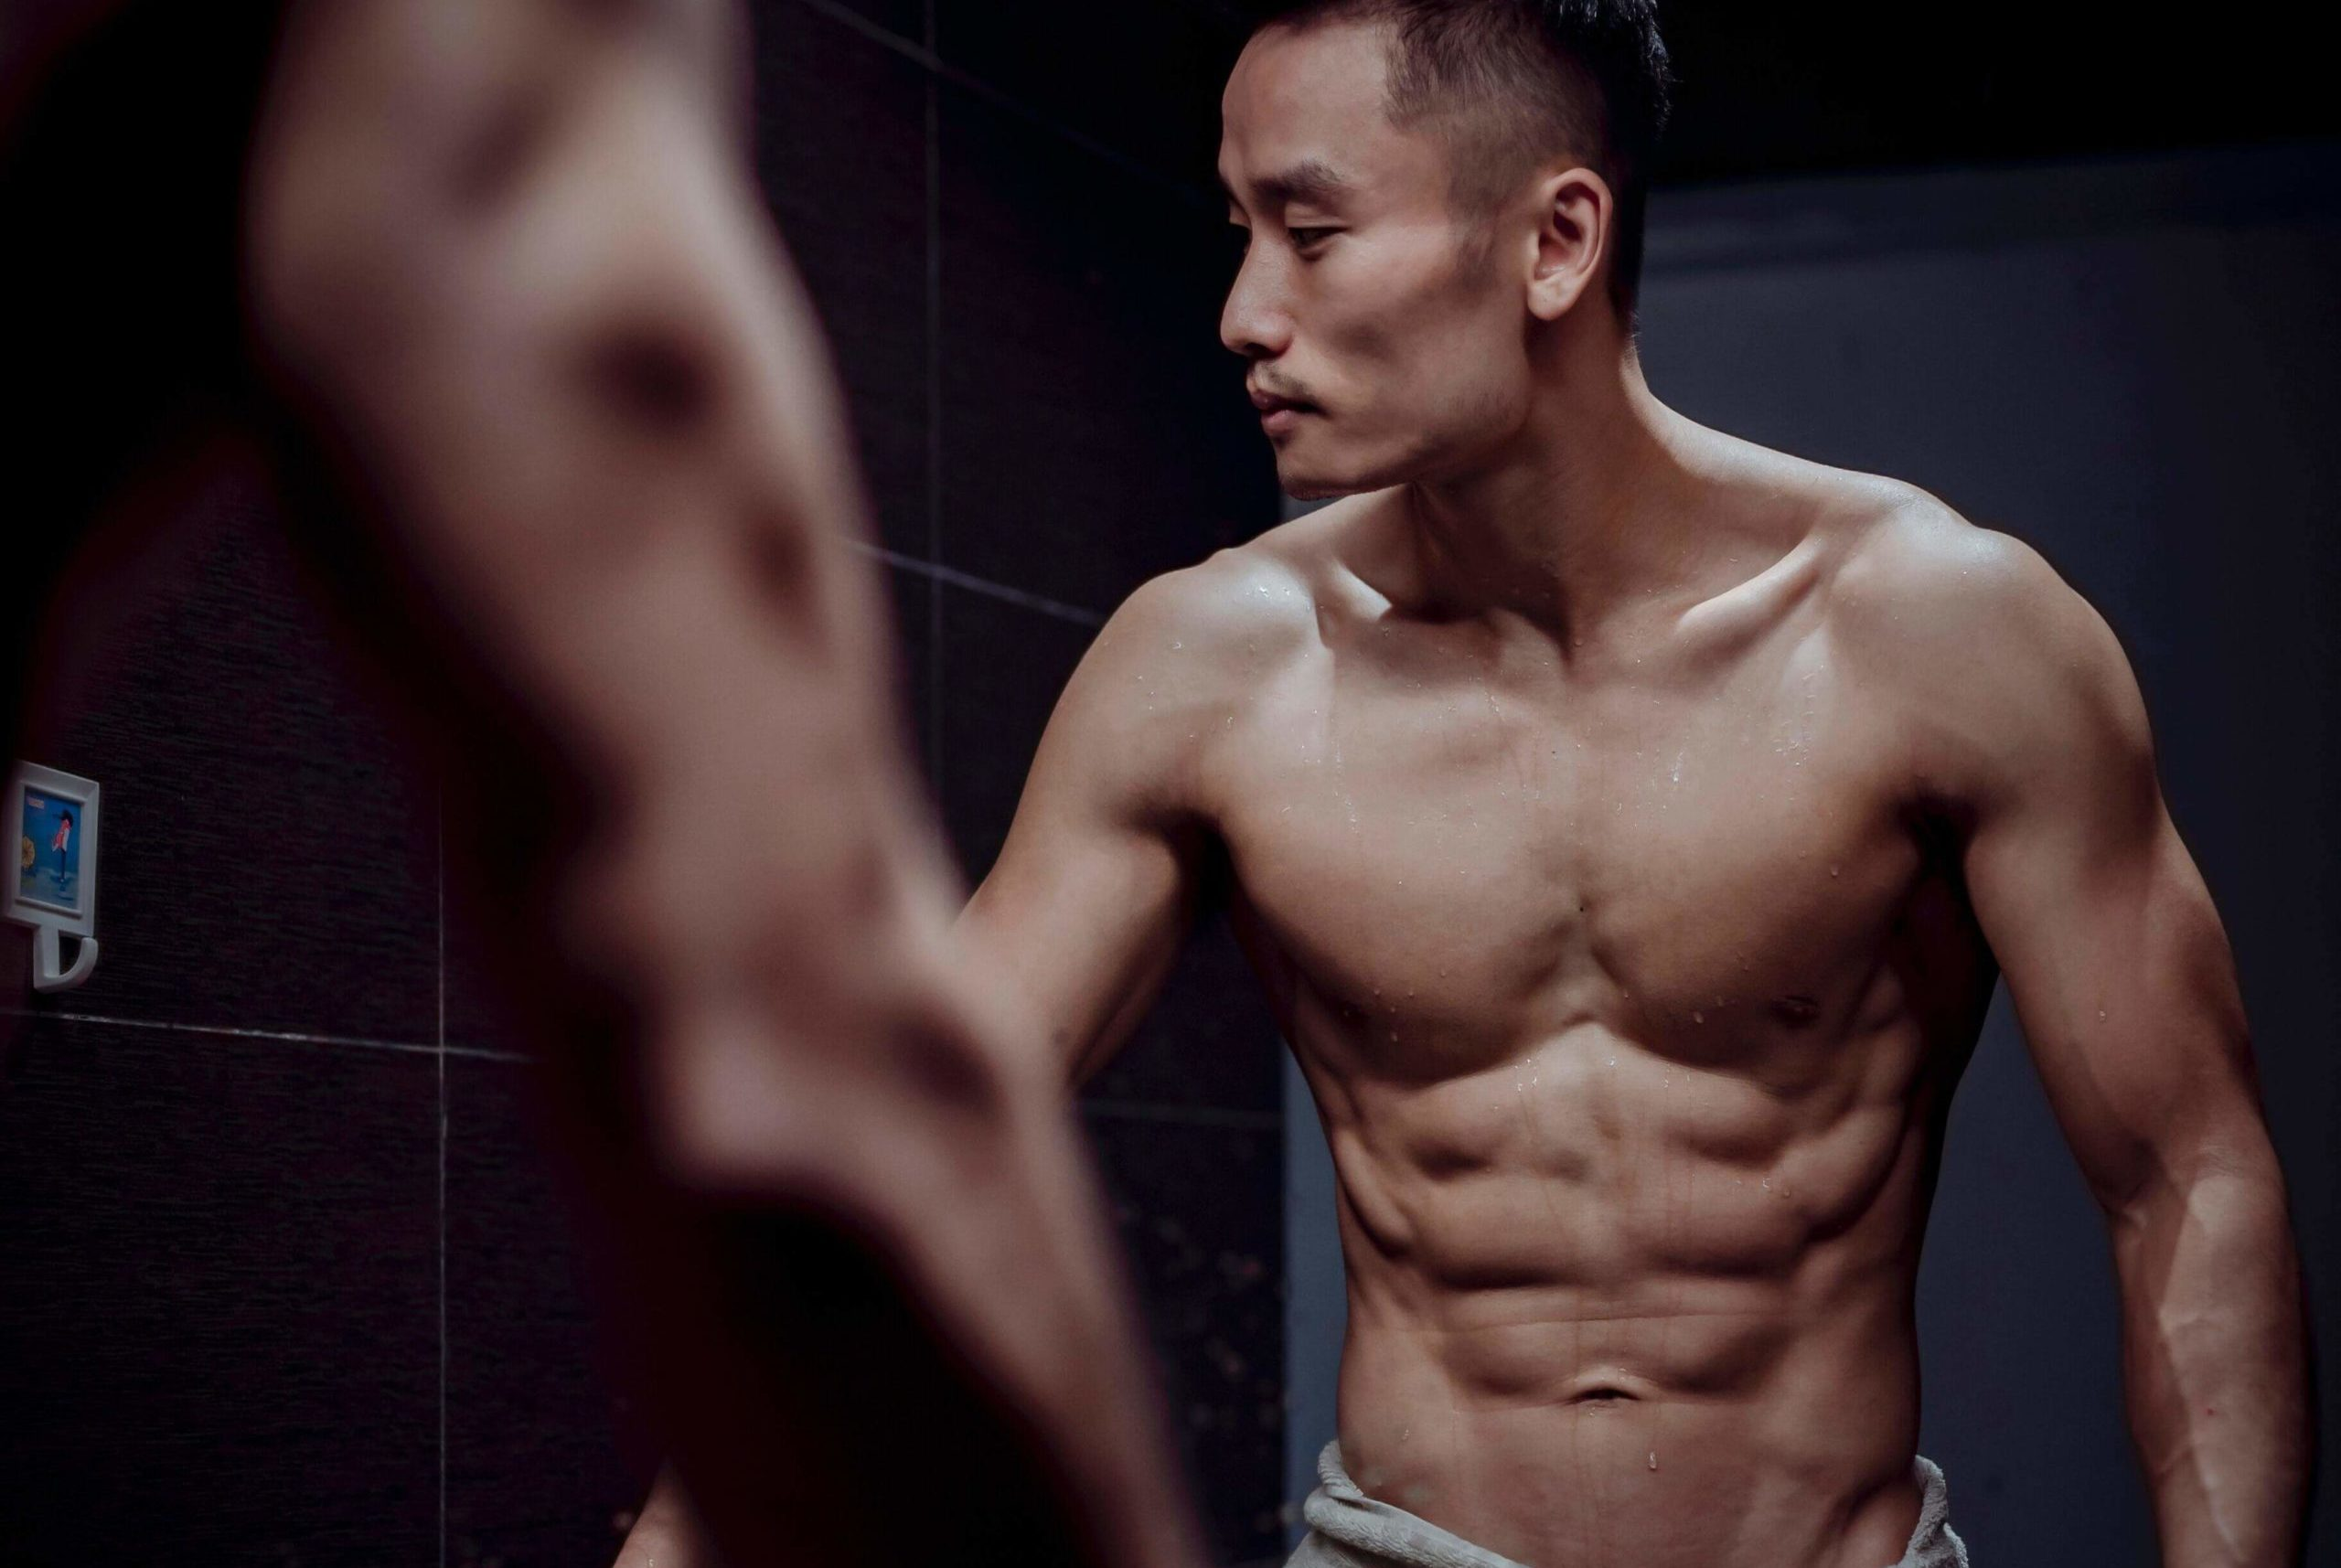 Shirtless Man Doing the Stomach Vacuum Exercise in Bathroom